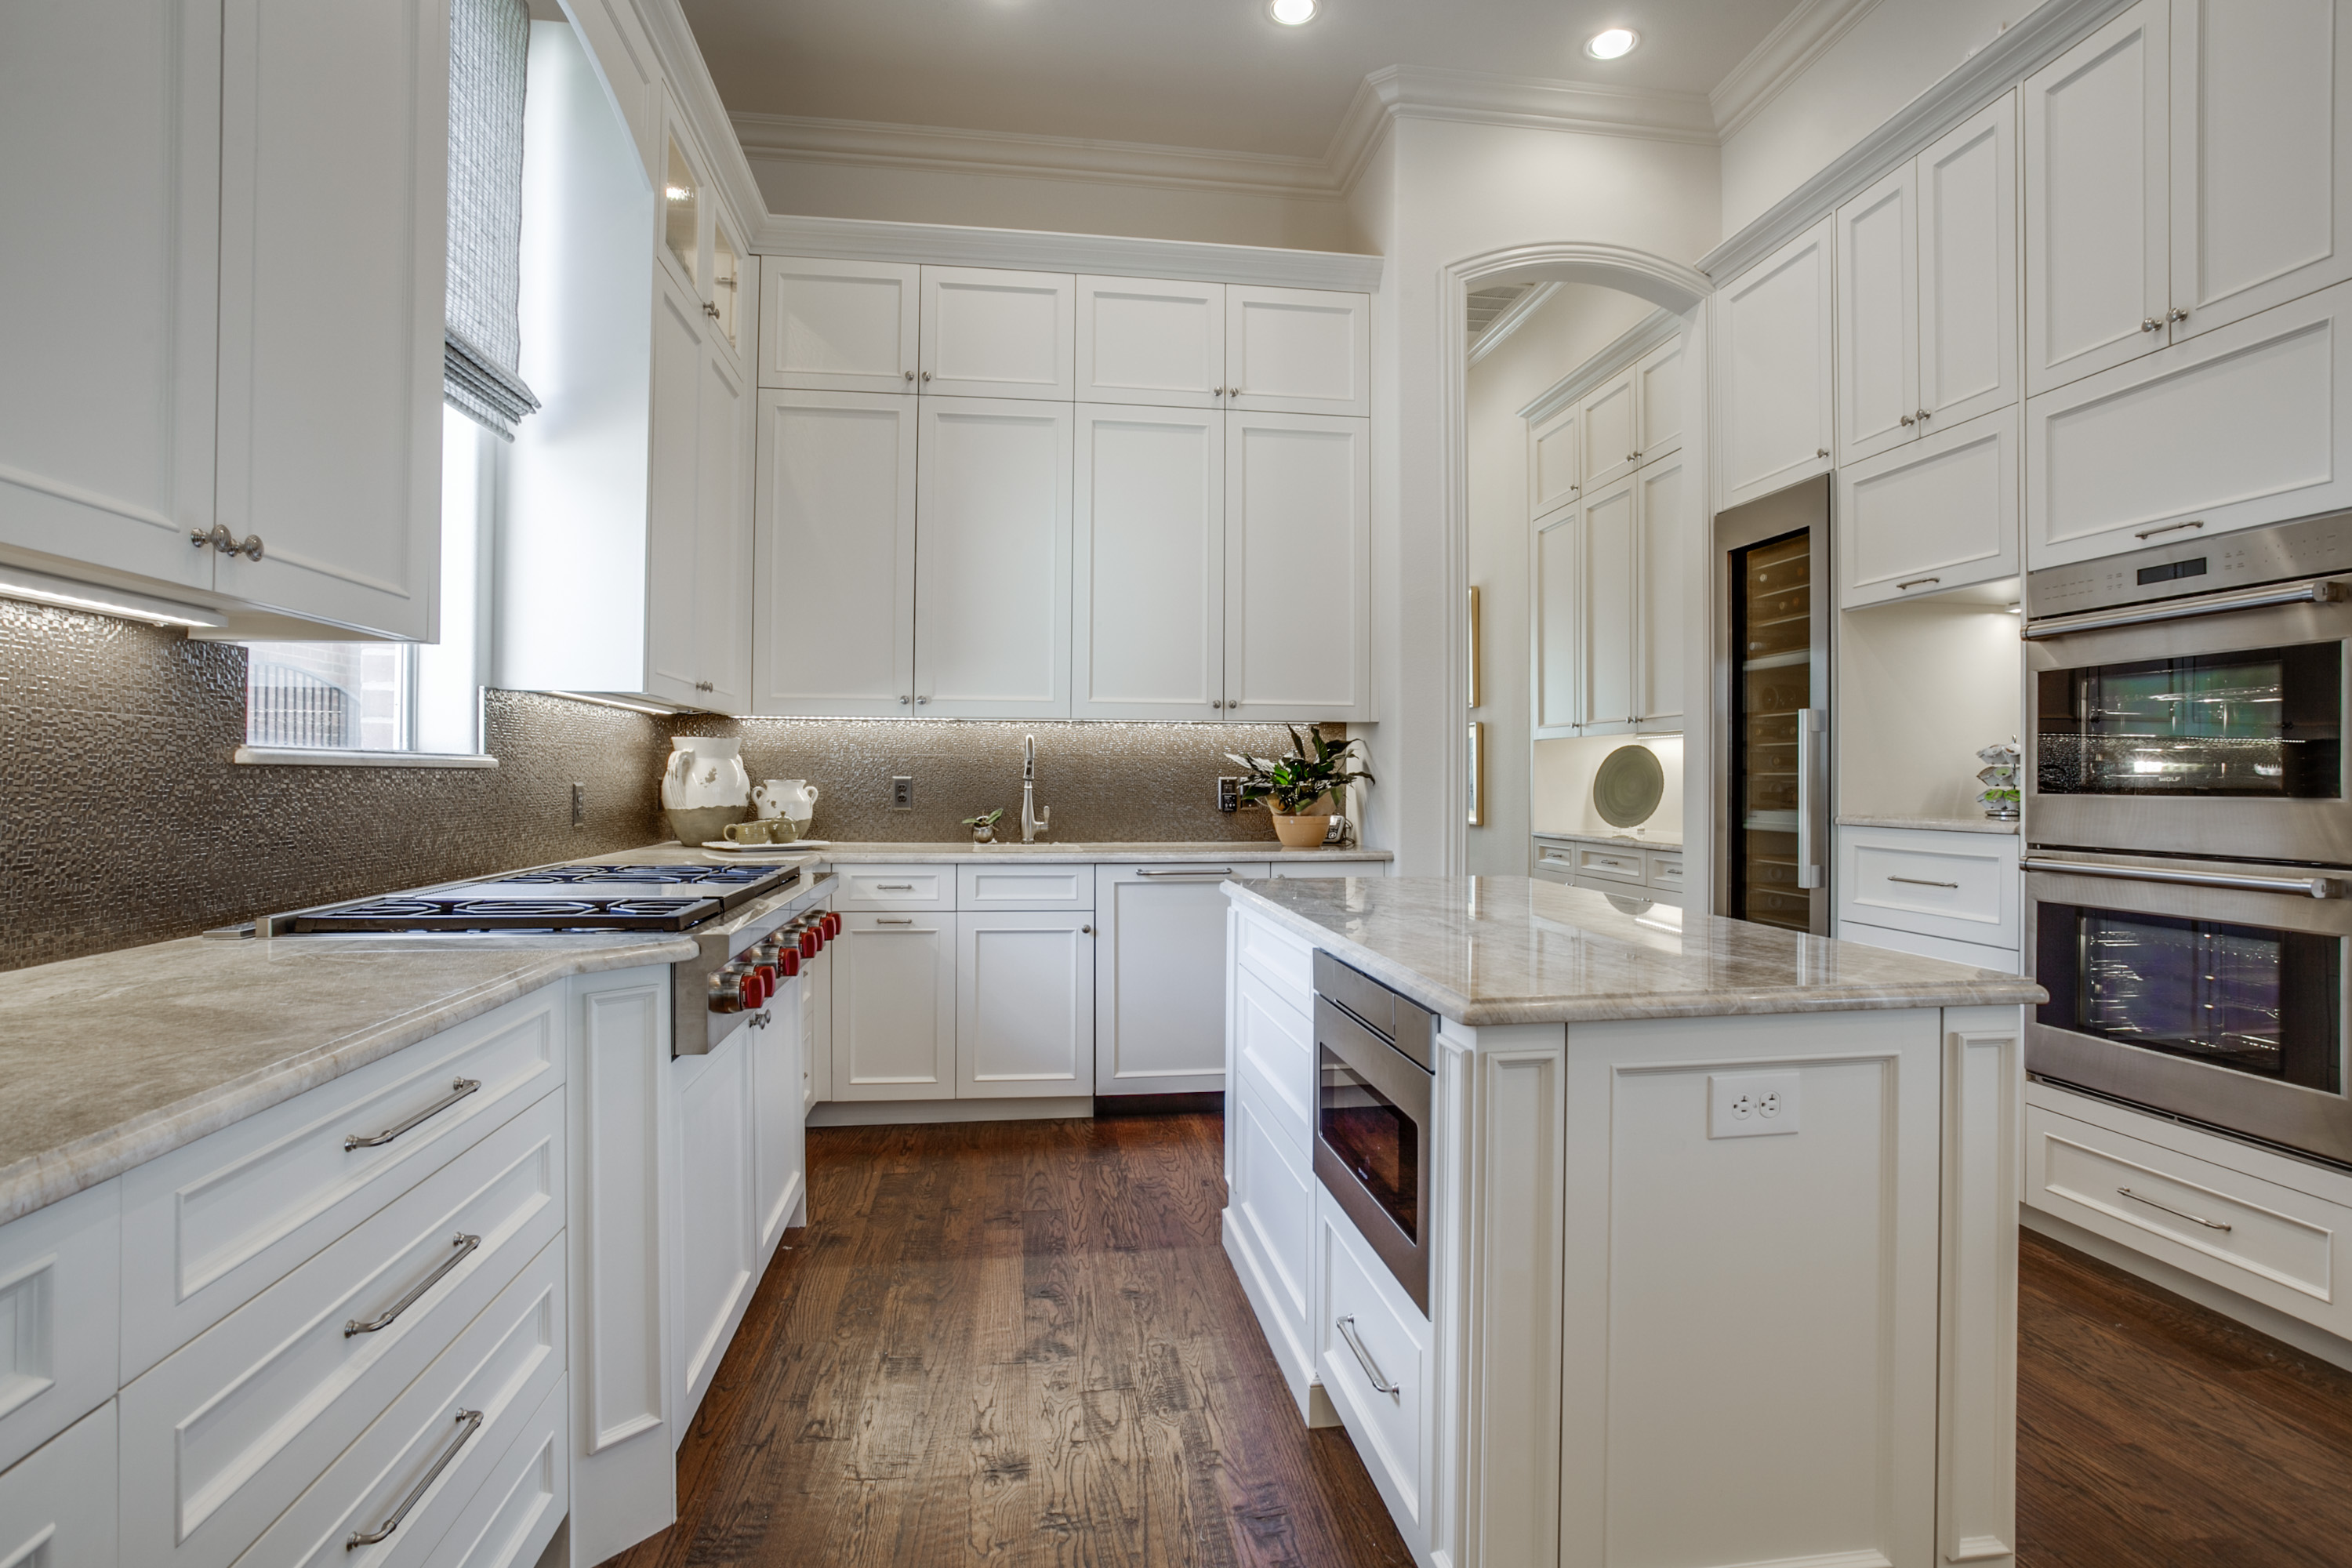 J. Williams Construction U0026 Remodeling, Inc.   Our Work   Kitchen Remodeling    Home, Kitchen U0026 Bath Remodeling In Dallas, Highland Park, University  Park, ...